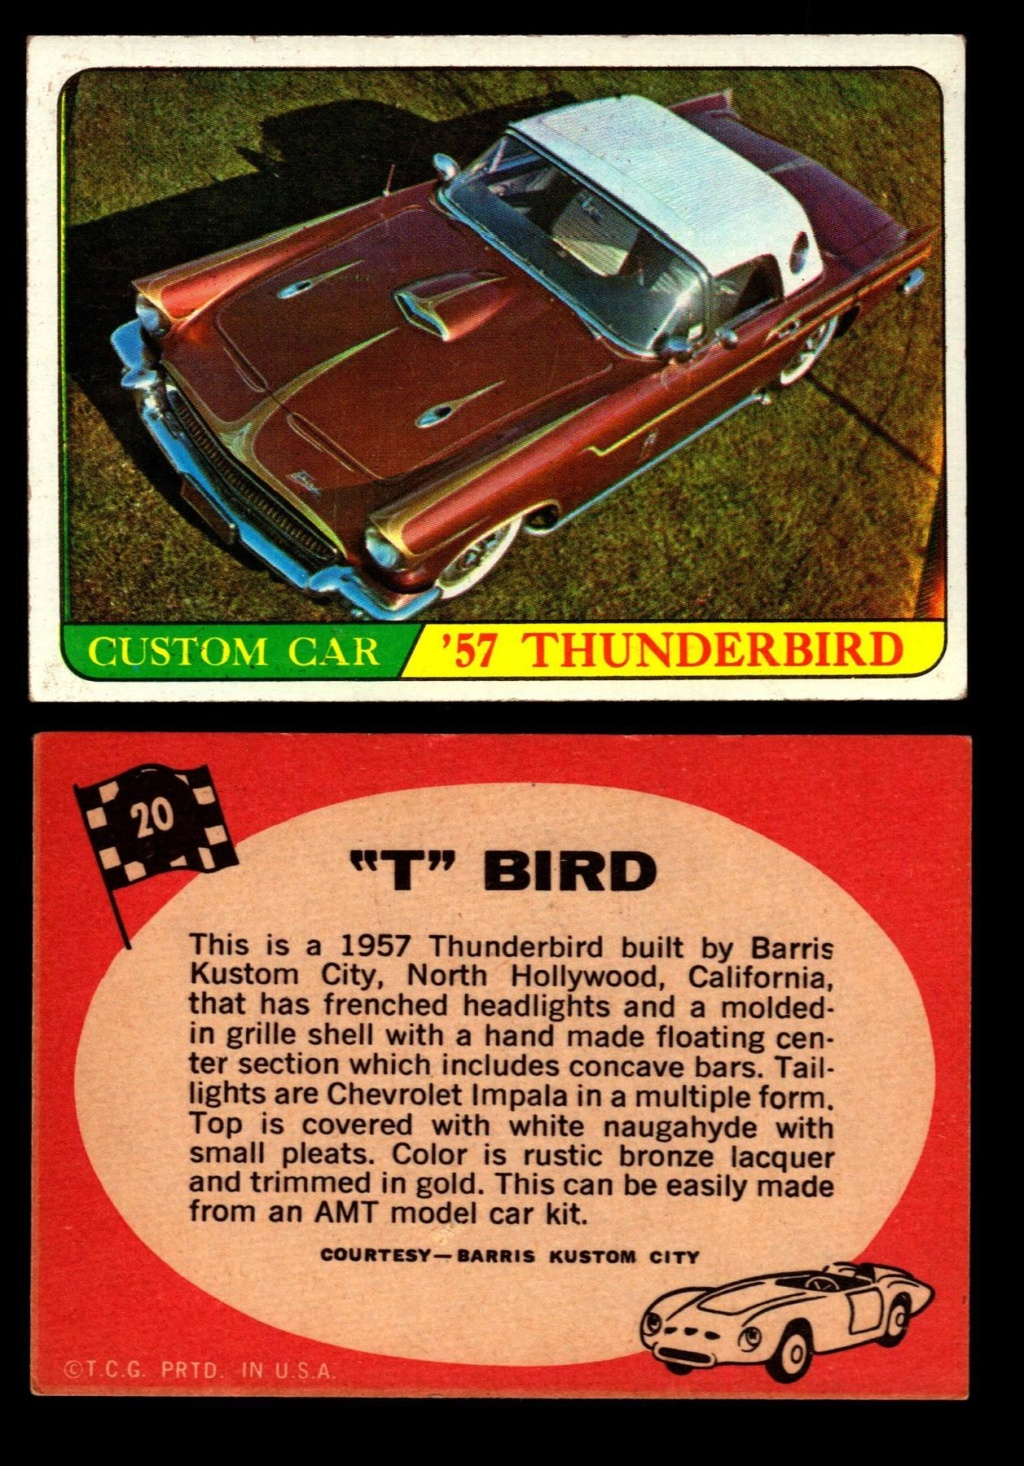 Hot Rods Topps - Vintage Trading Cards 1968 - Custom car - Dragster - Racer - Dream car - Barris Kustom City - Ed Roth Darrill Starbird, Gene Winfield, Bill Cuchenberry 20_18710